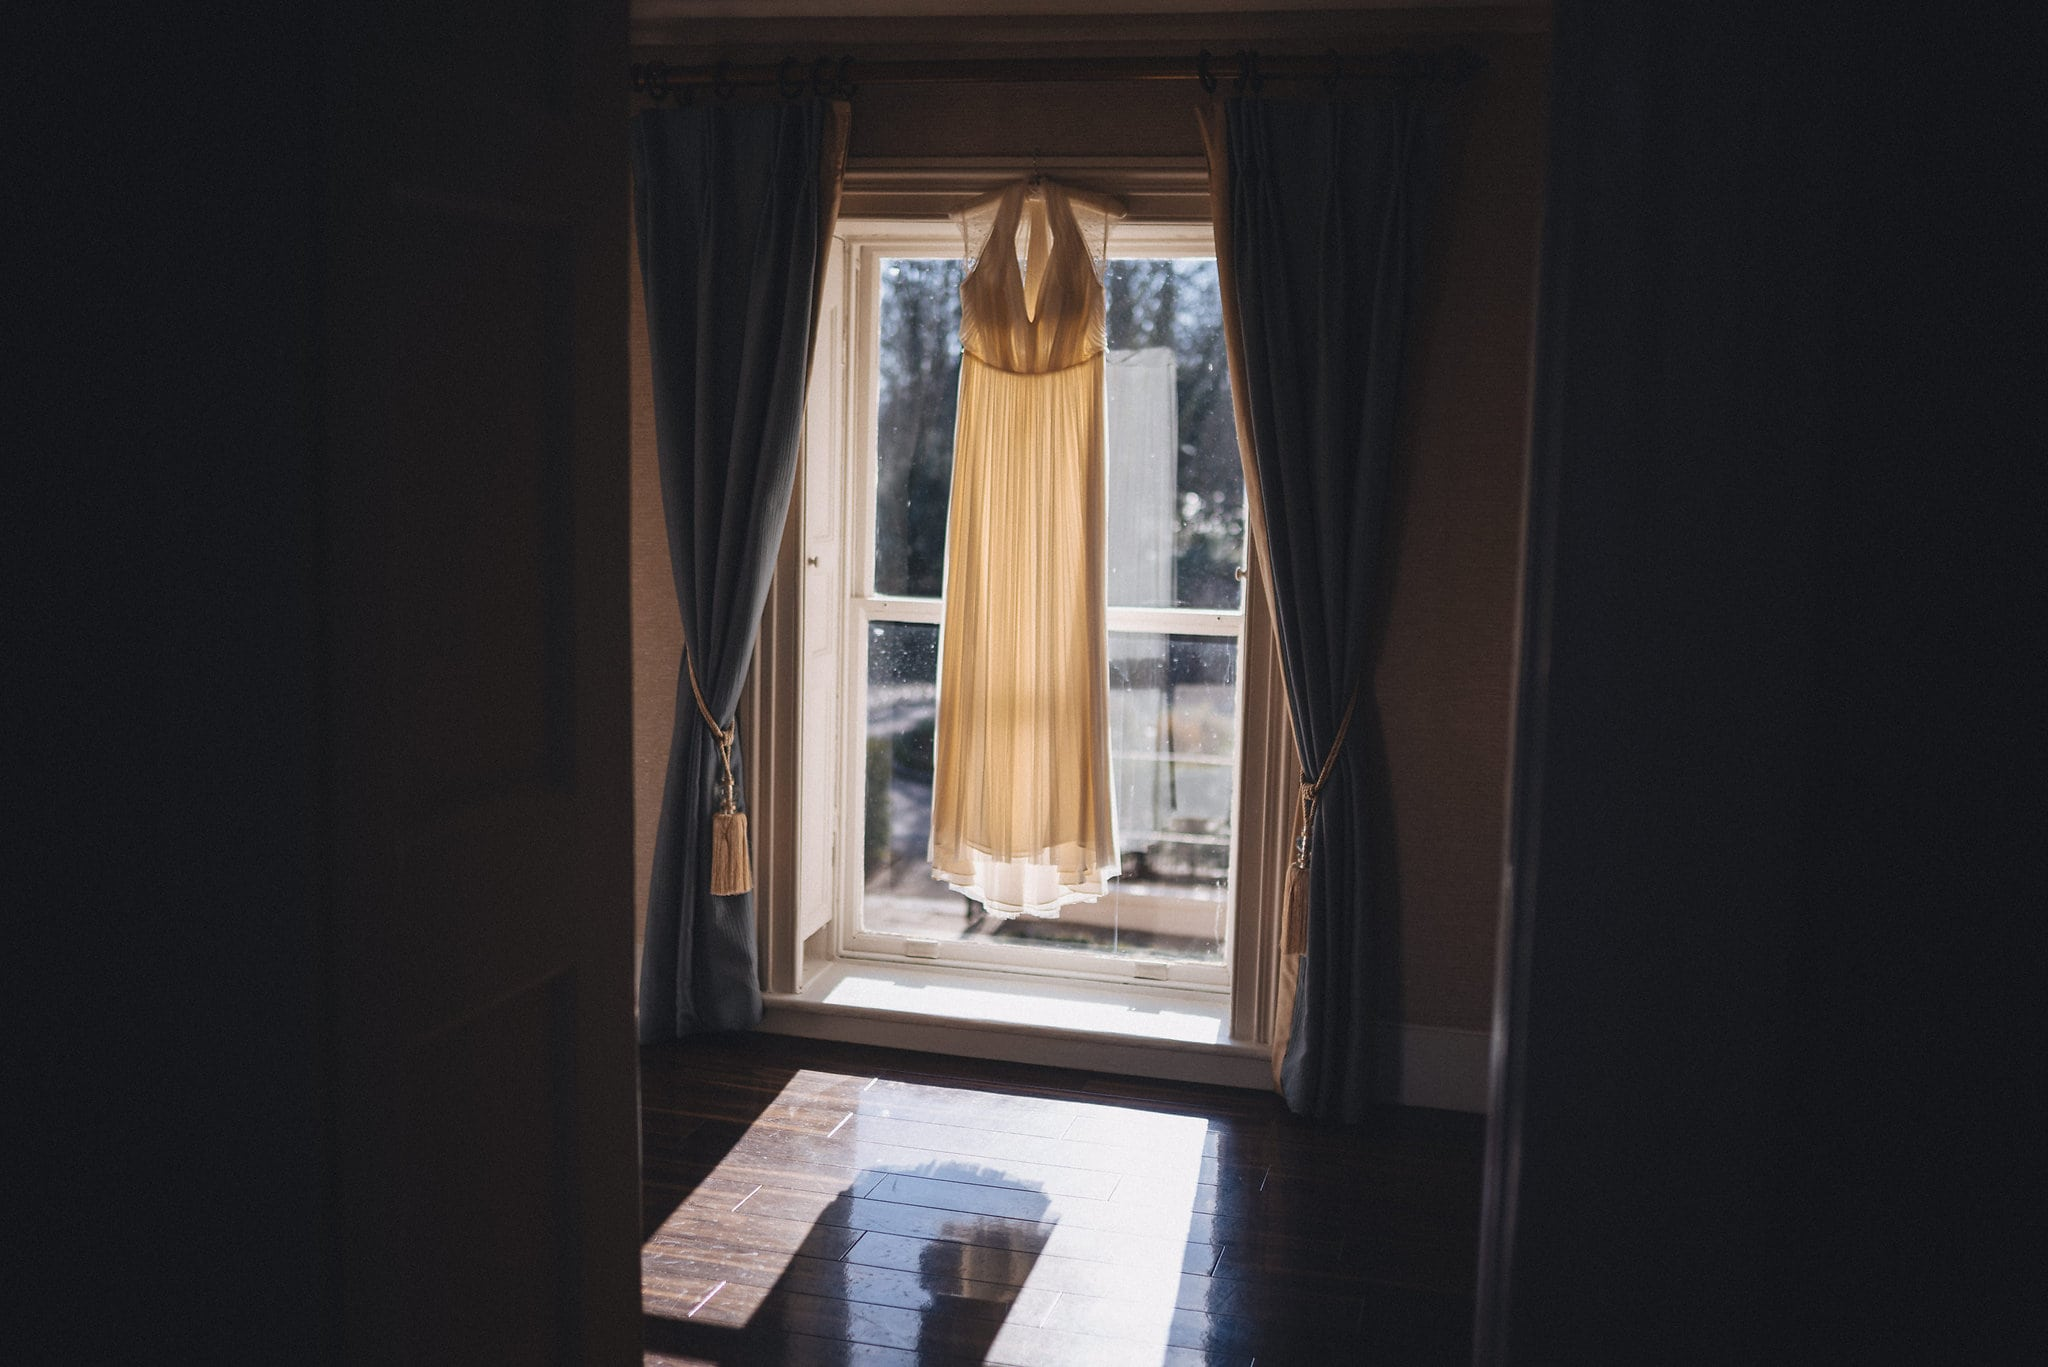 Wedding dress hanging in the window with sun streaming in at Morden Hall